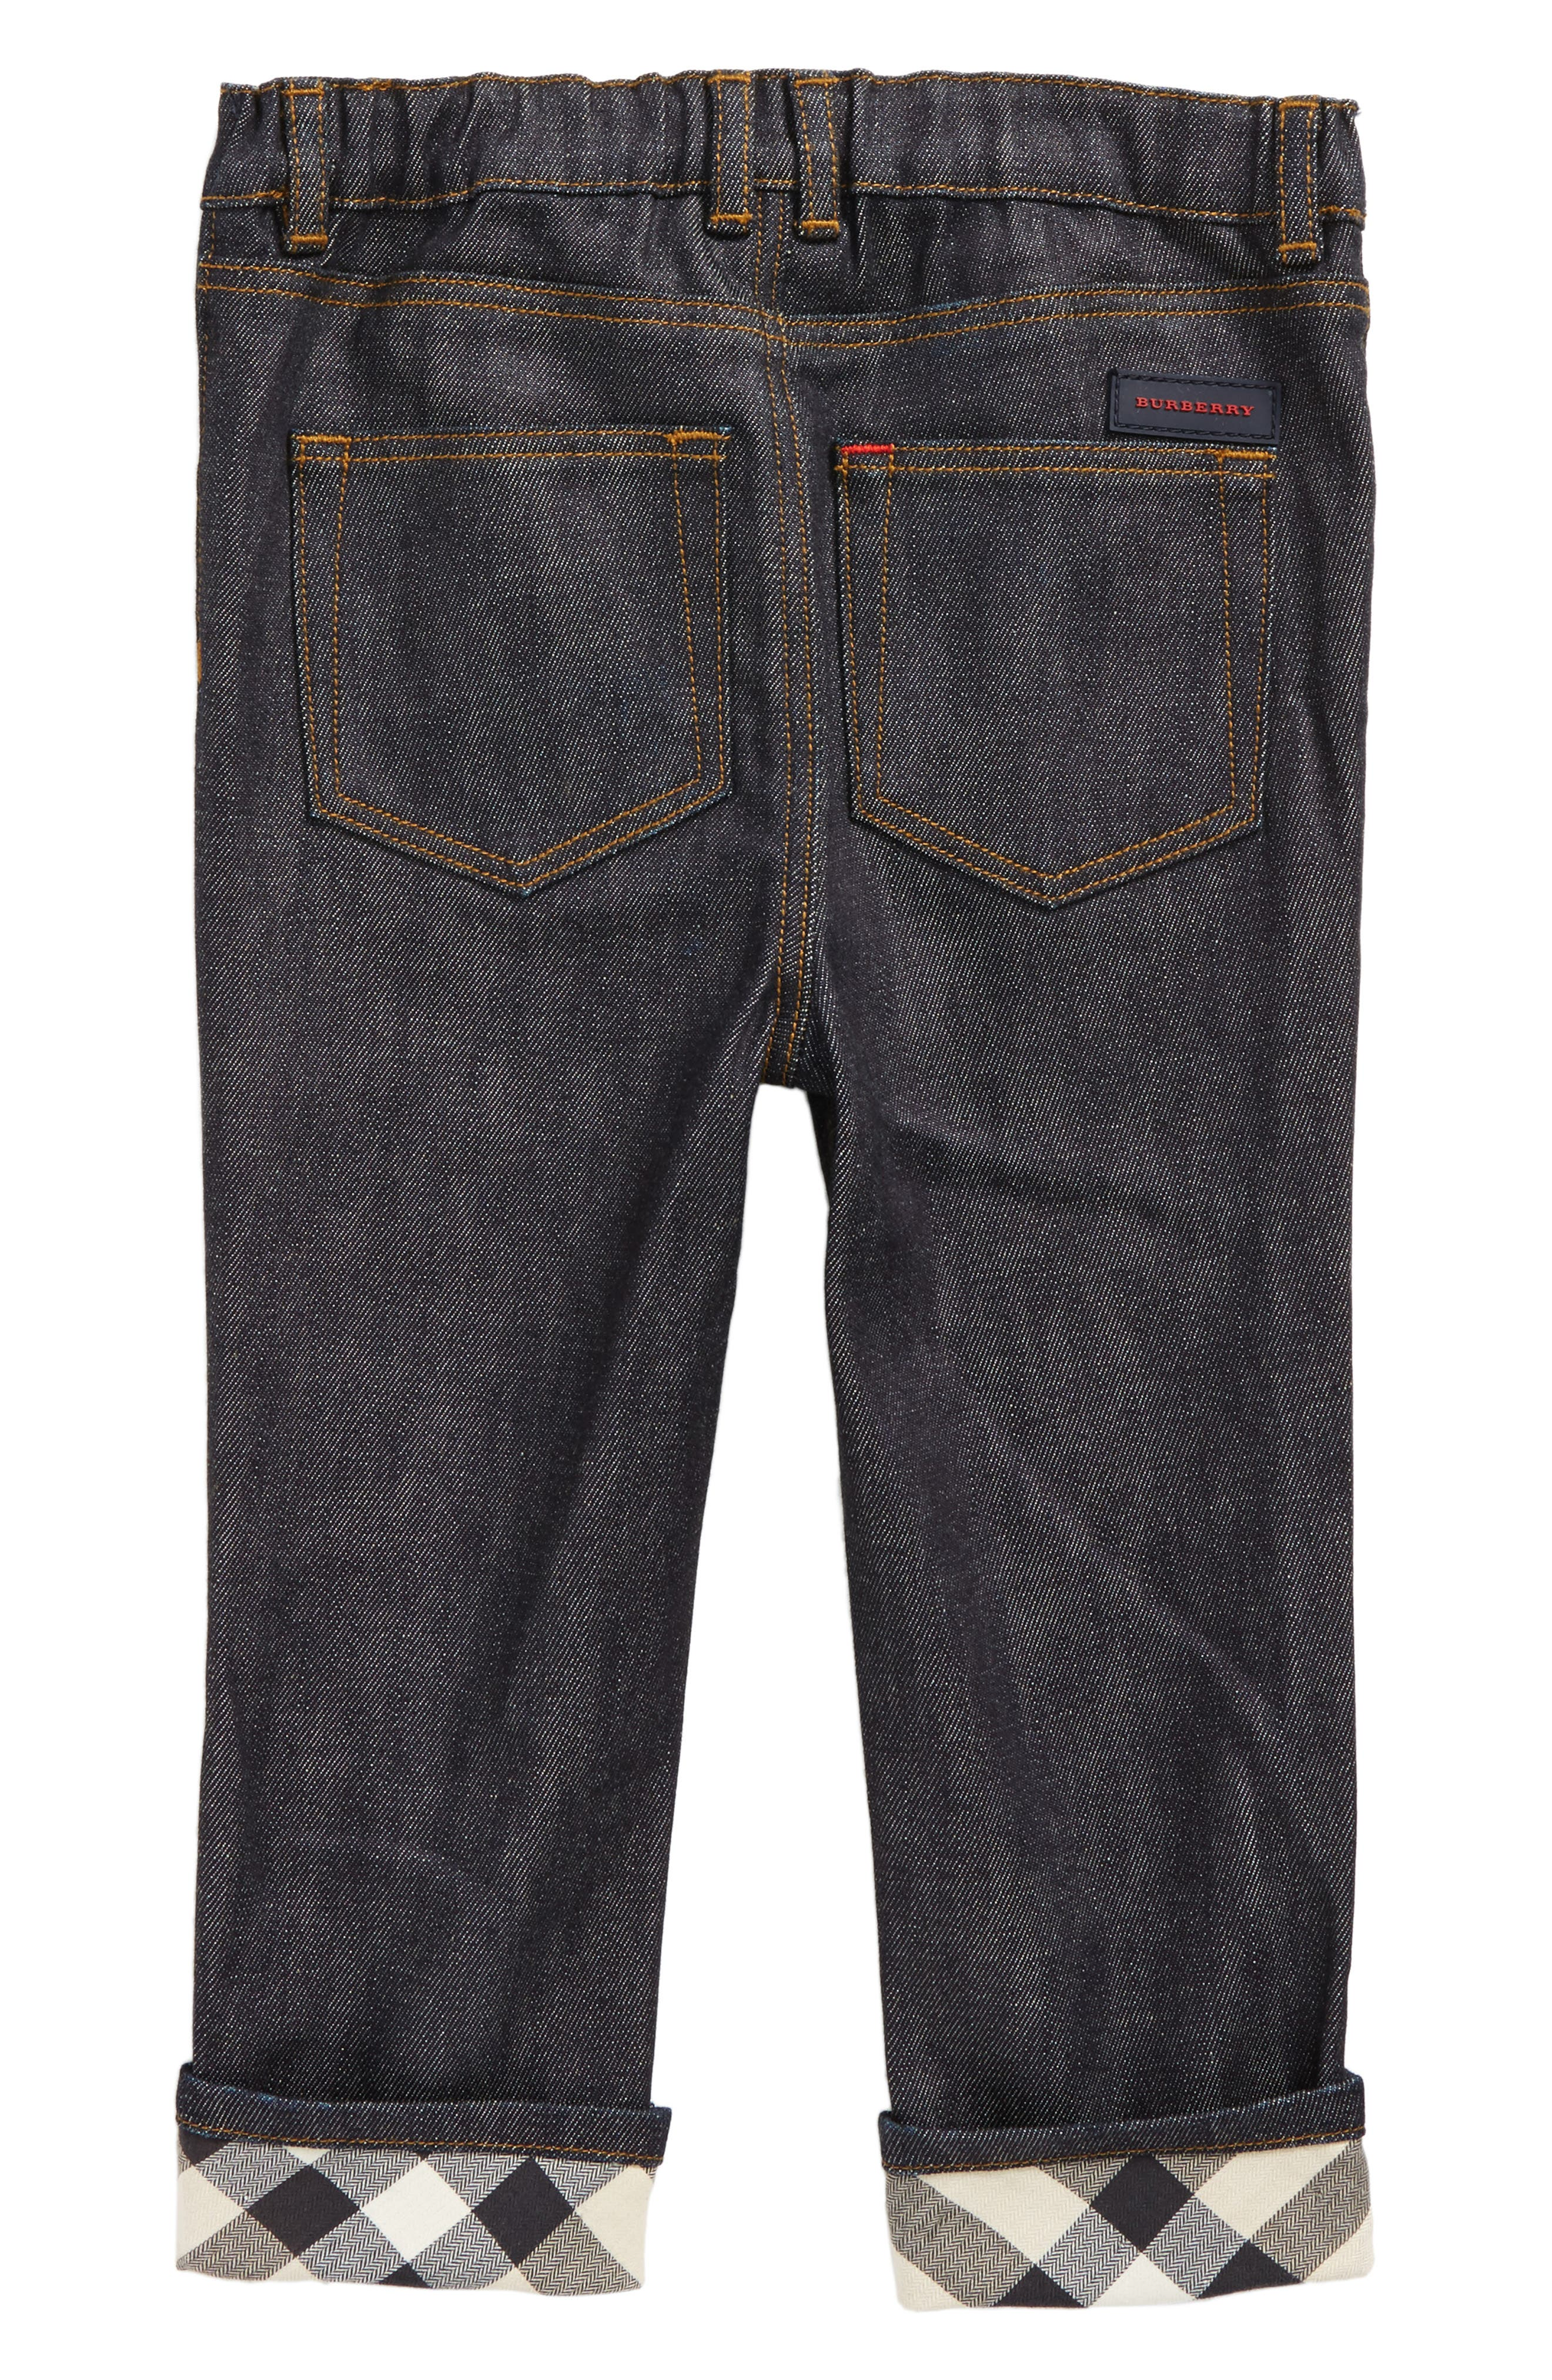 Alternate Image 2  - Burberry Check Cuff Relaxed Jeans (Toddler Boys)